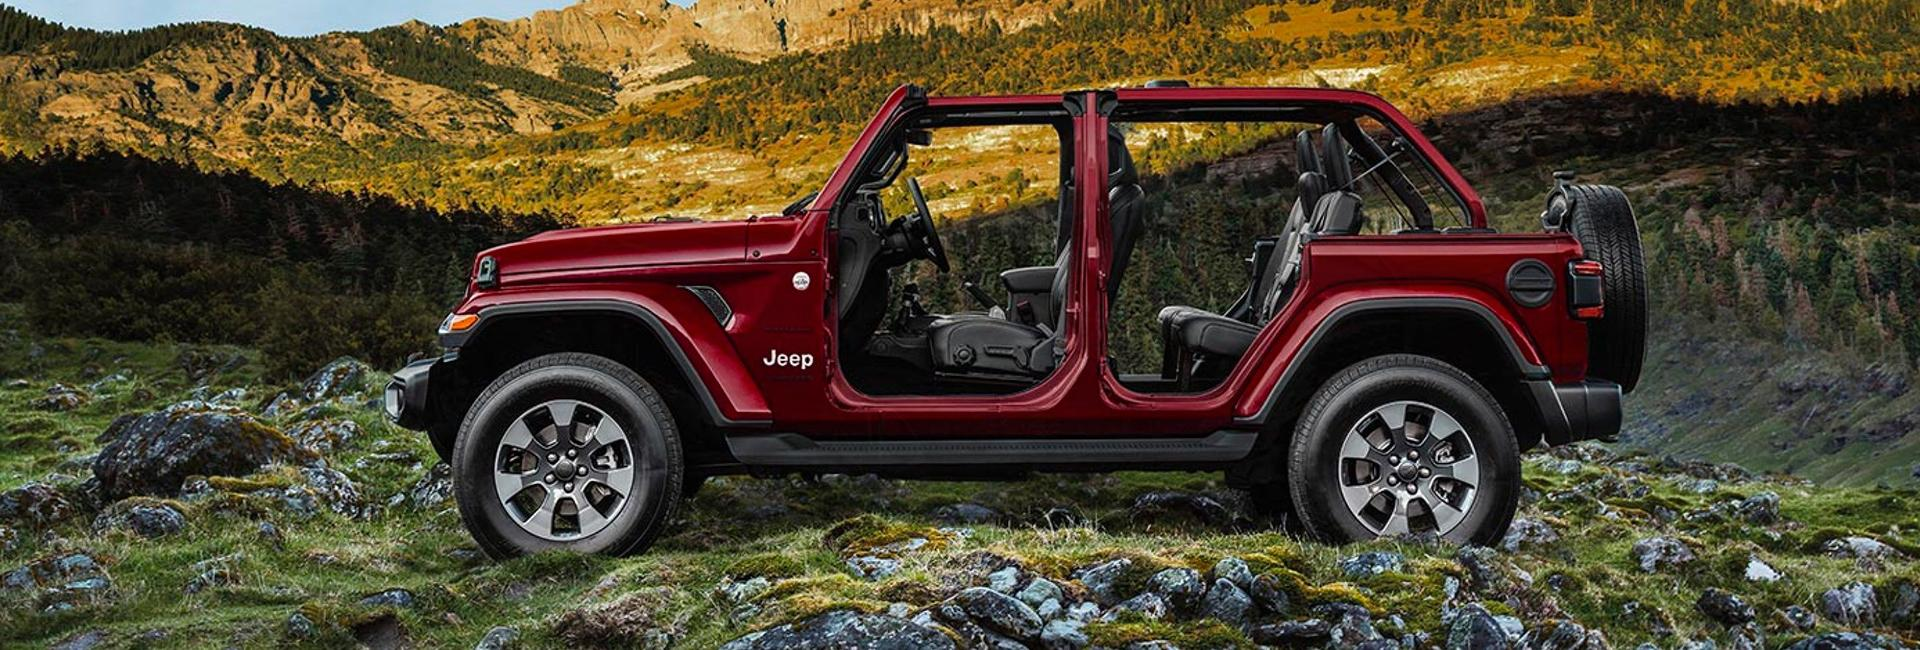 The 2021 Jeep Wrangler without doors on a mountain trail